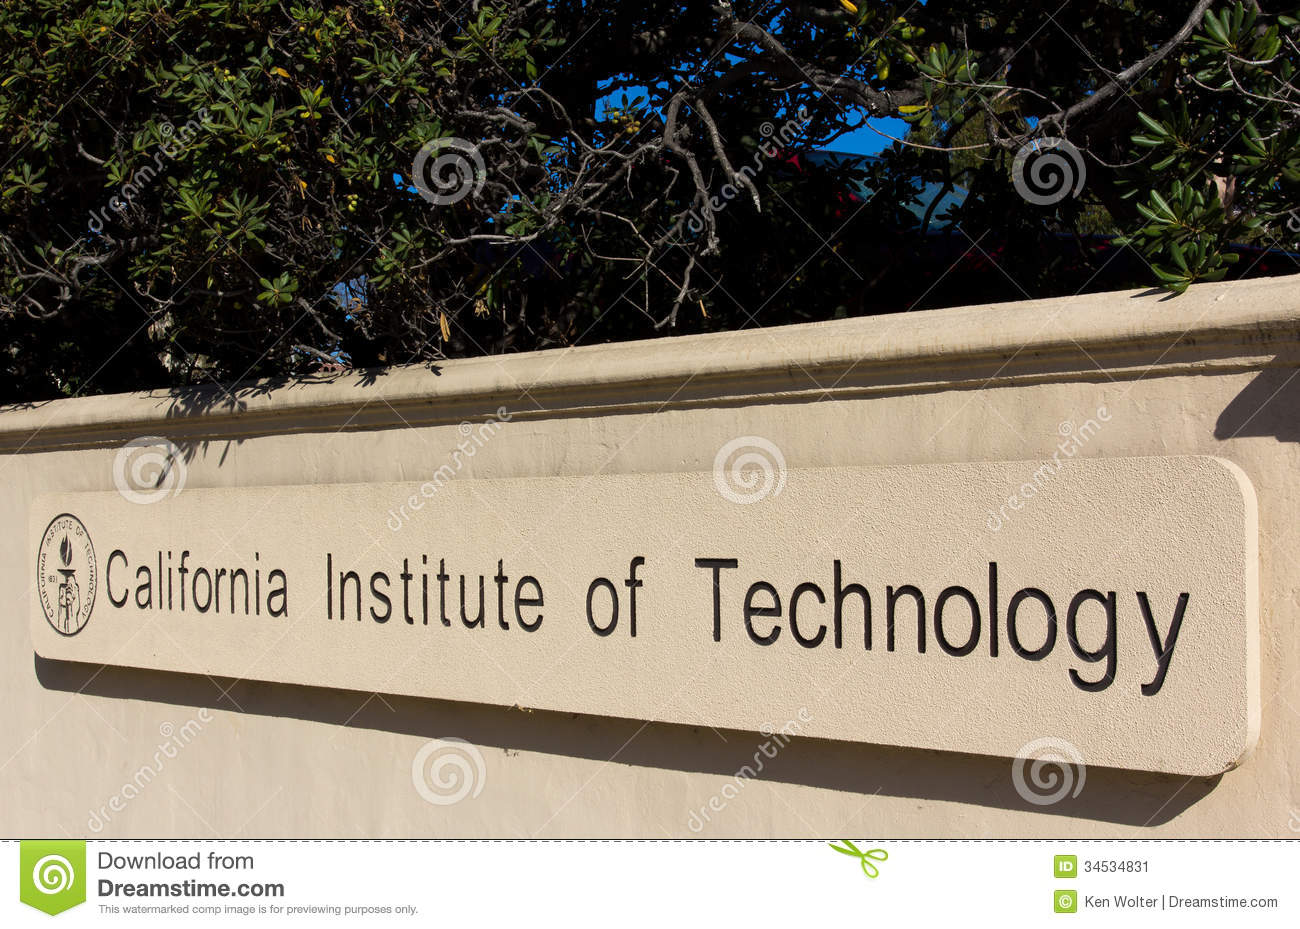 List of California Universities with PhD Programs - Study.com